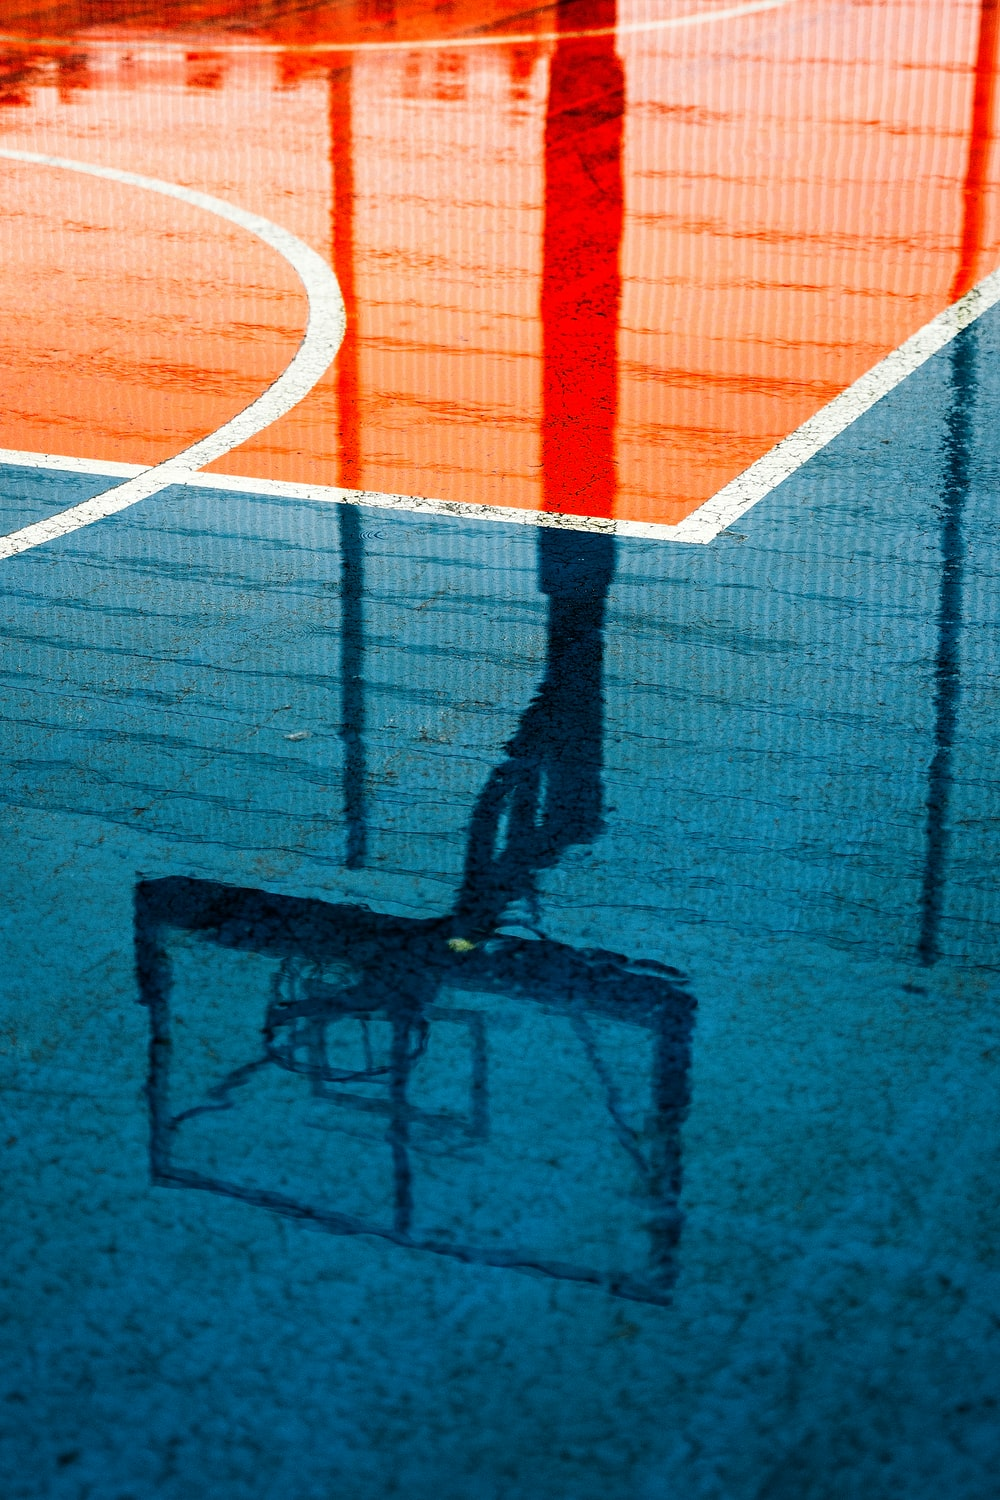 shadow of person on basketball court during daytime